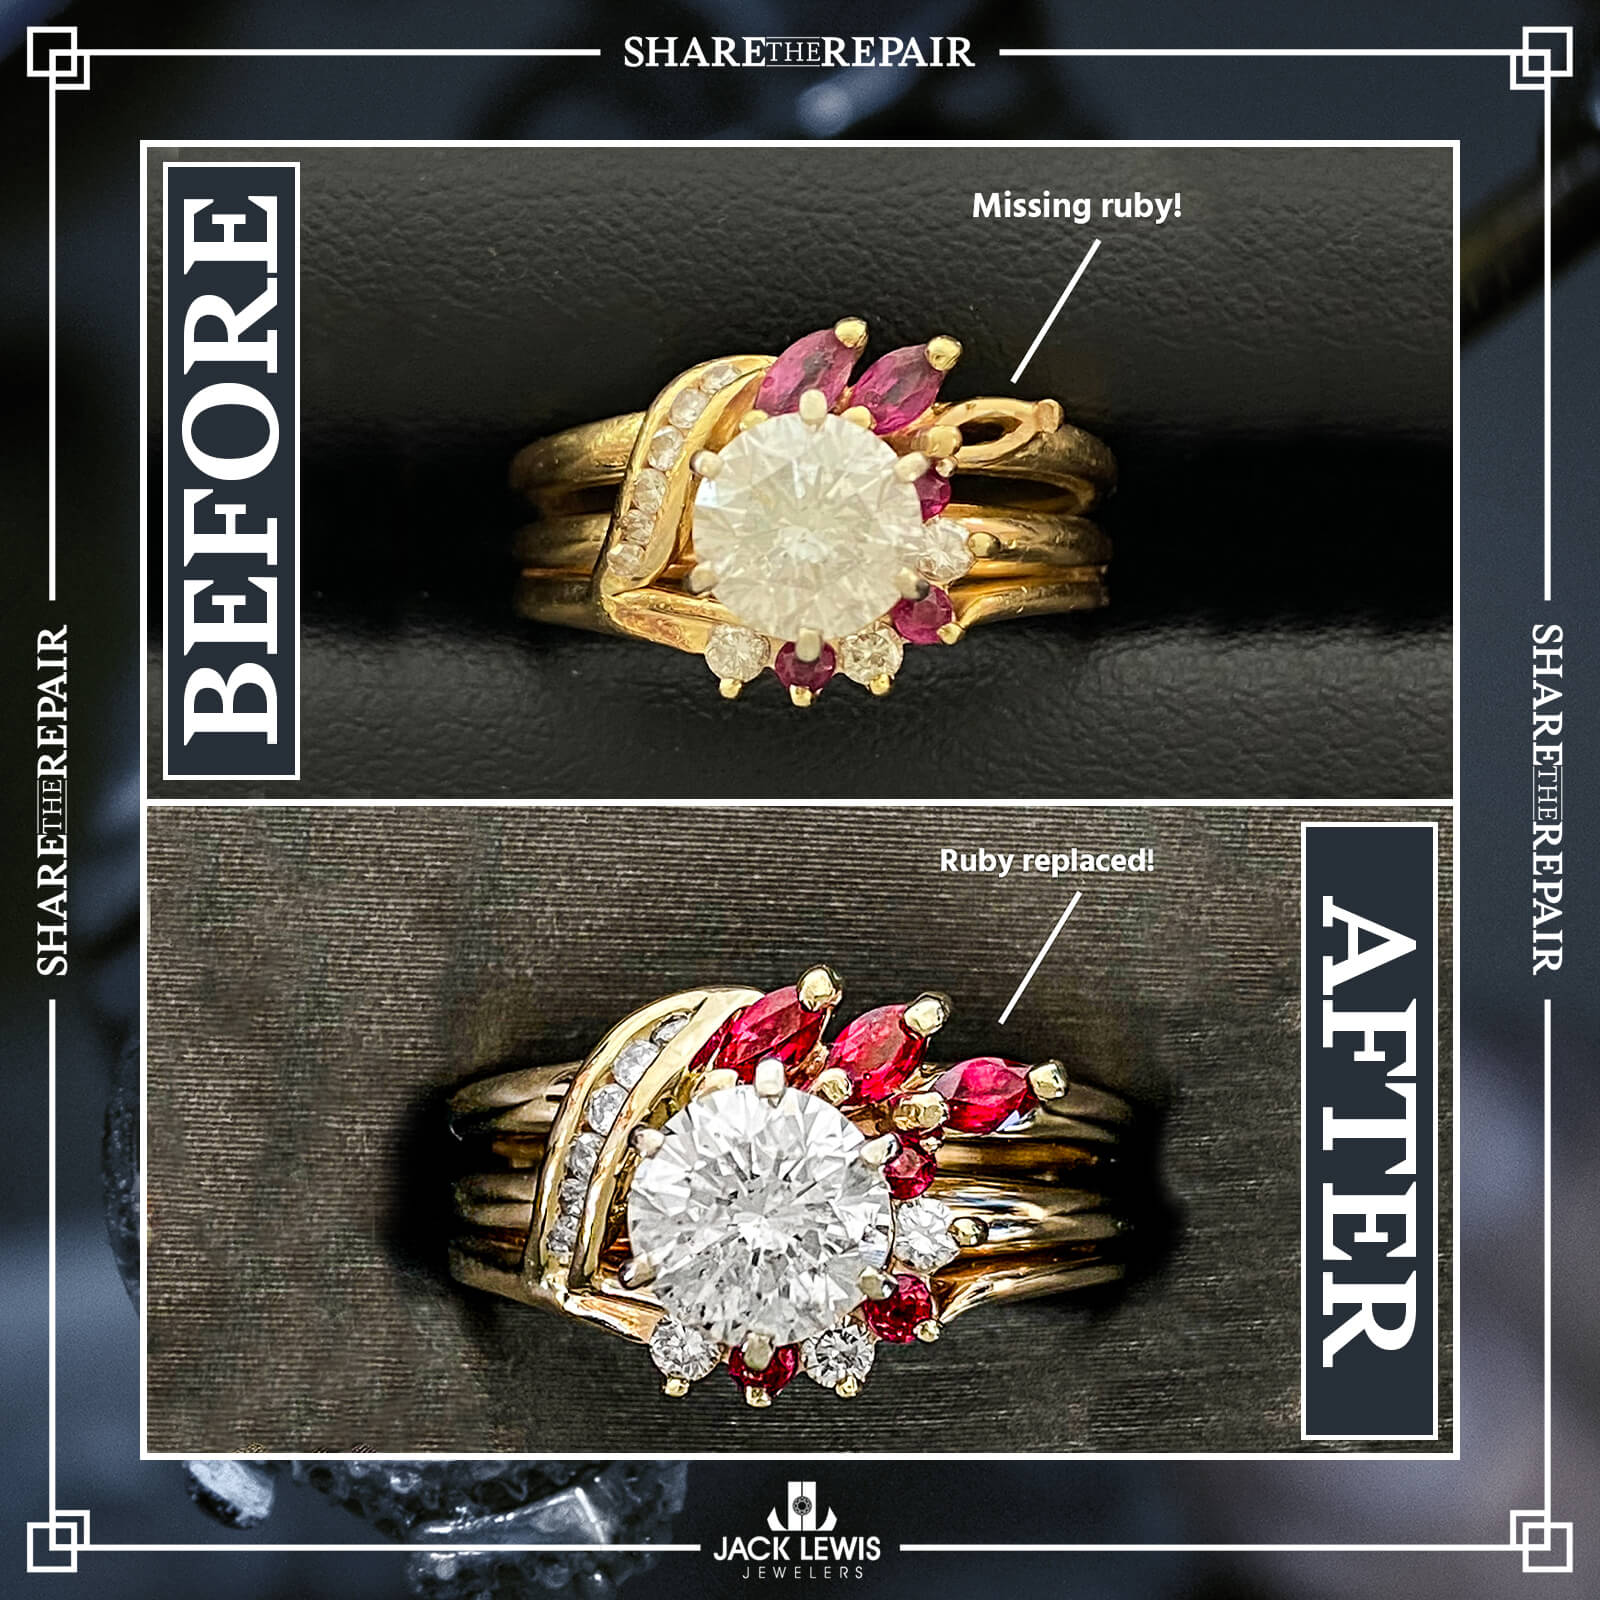 before and after picture of a yellow gold ring with a round diamond in the middle and rubies surrounding it. before a ruby is missing and ring is discolored.